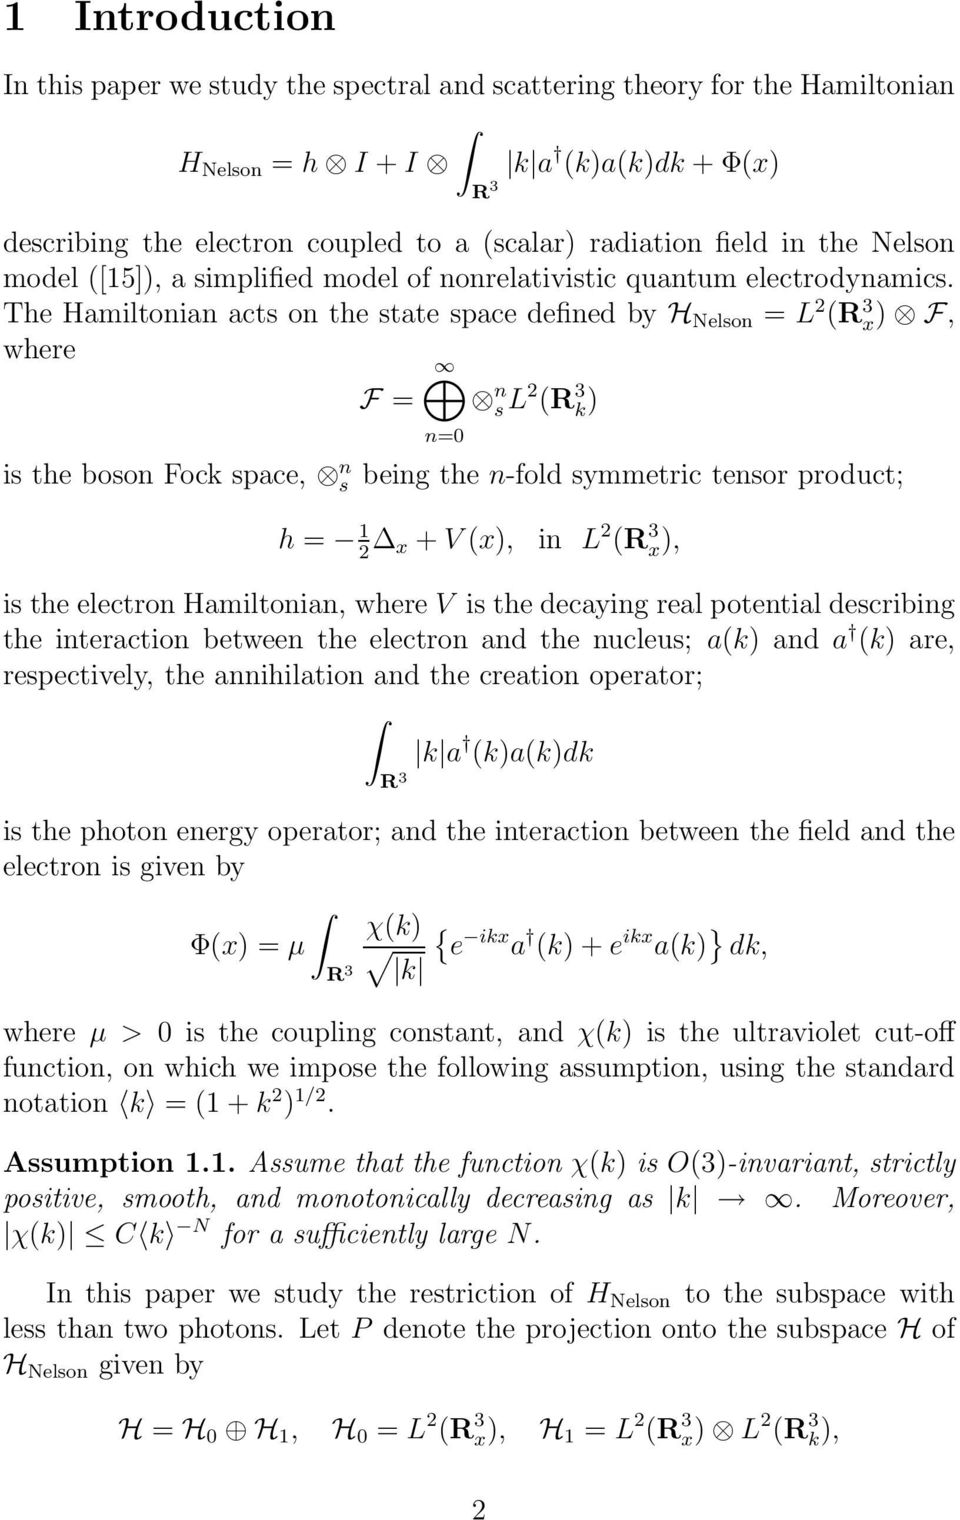 The Hamiltonian acts on the state space defined by H Nelson = L 2 R 3 x F, where F = n s L2 R 3 k is the boson Fock space, n s n=0 being the n-fold symmetric tensor product; h = 2 x + V x, in L 2 R 3